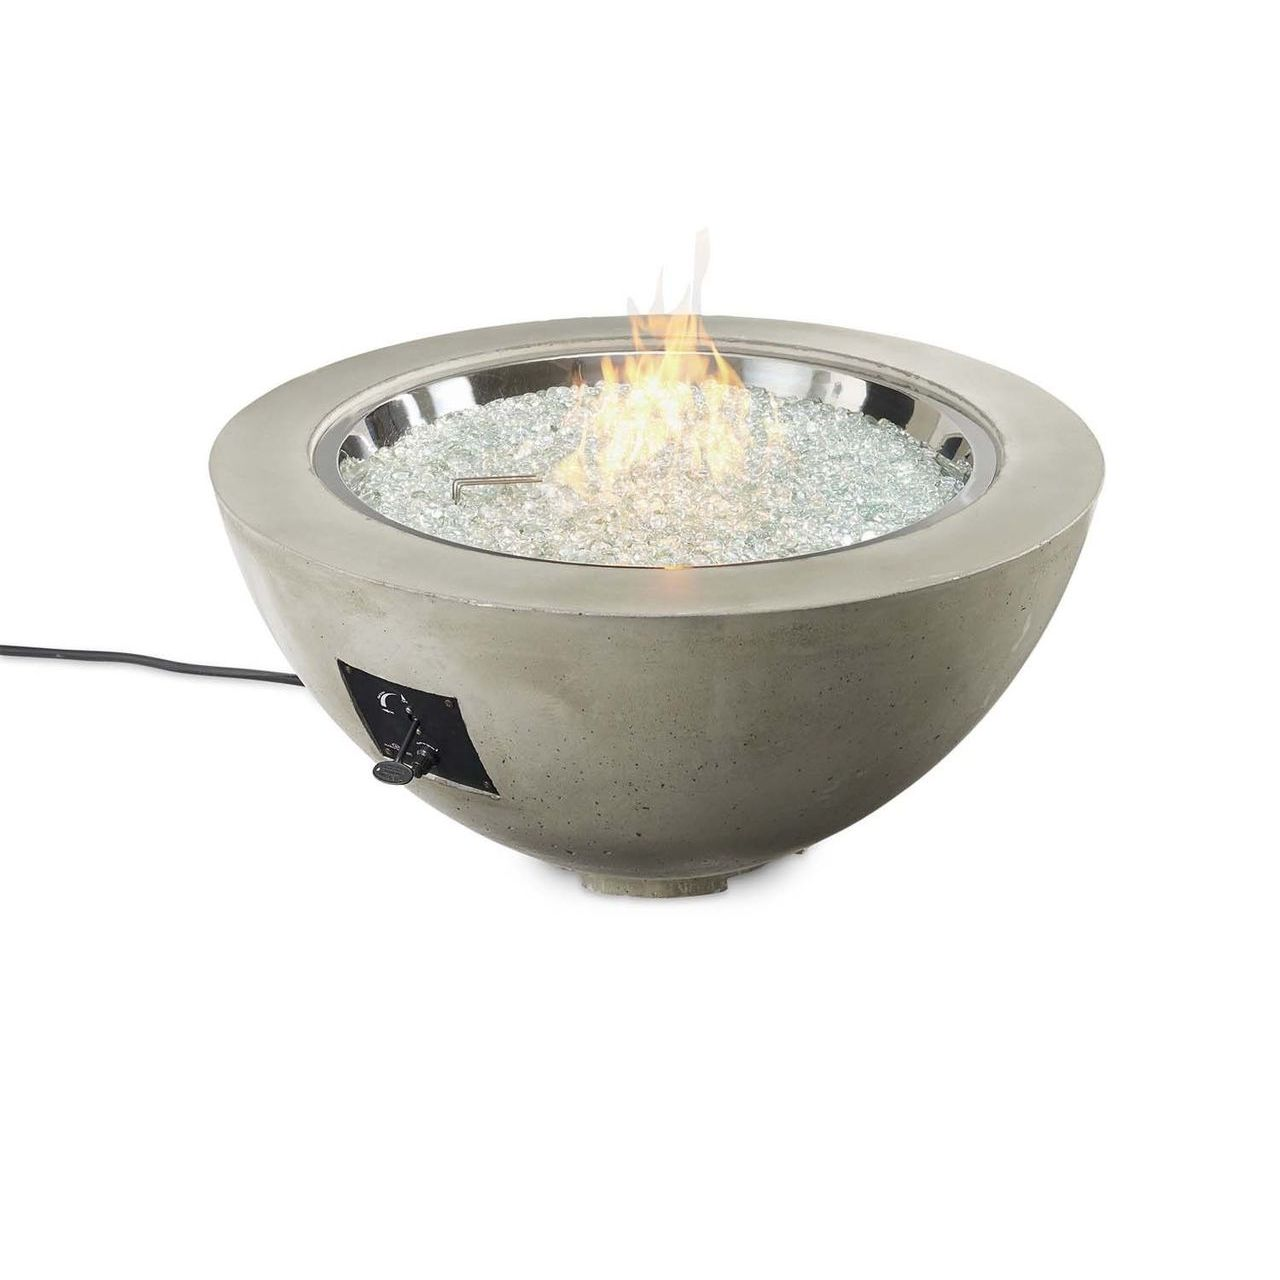 "Outdoor GreatRoom 42"" Cove Round Gas Fire Pit Bowl - Natural Grey"